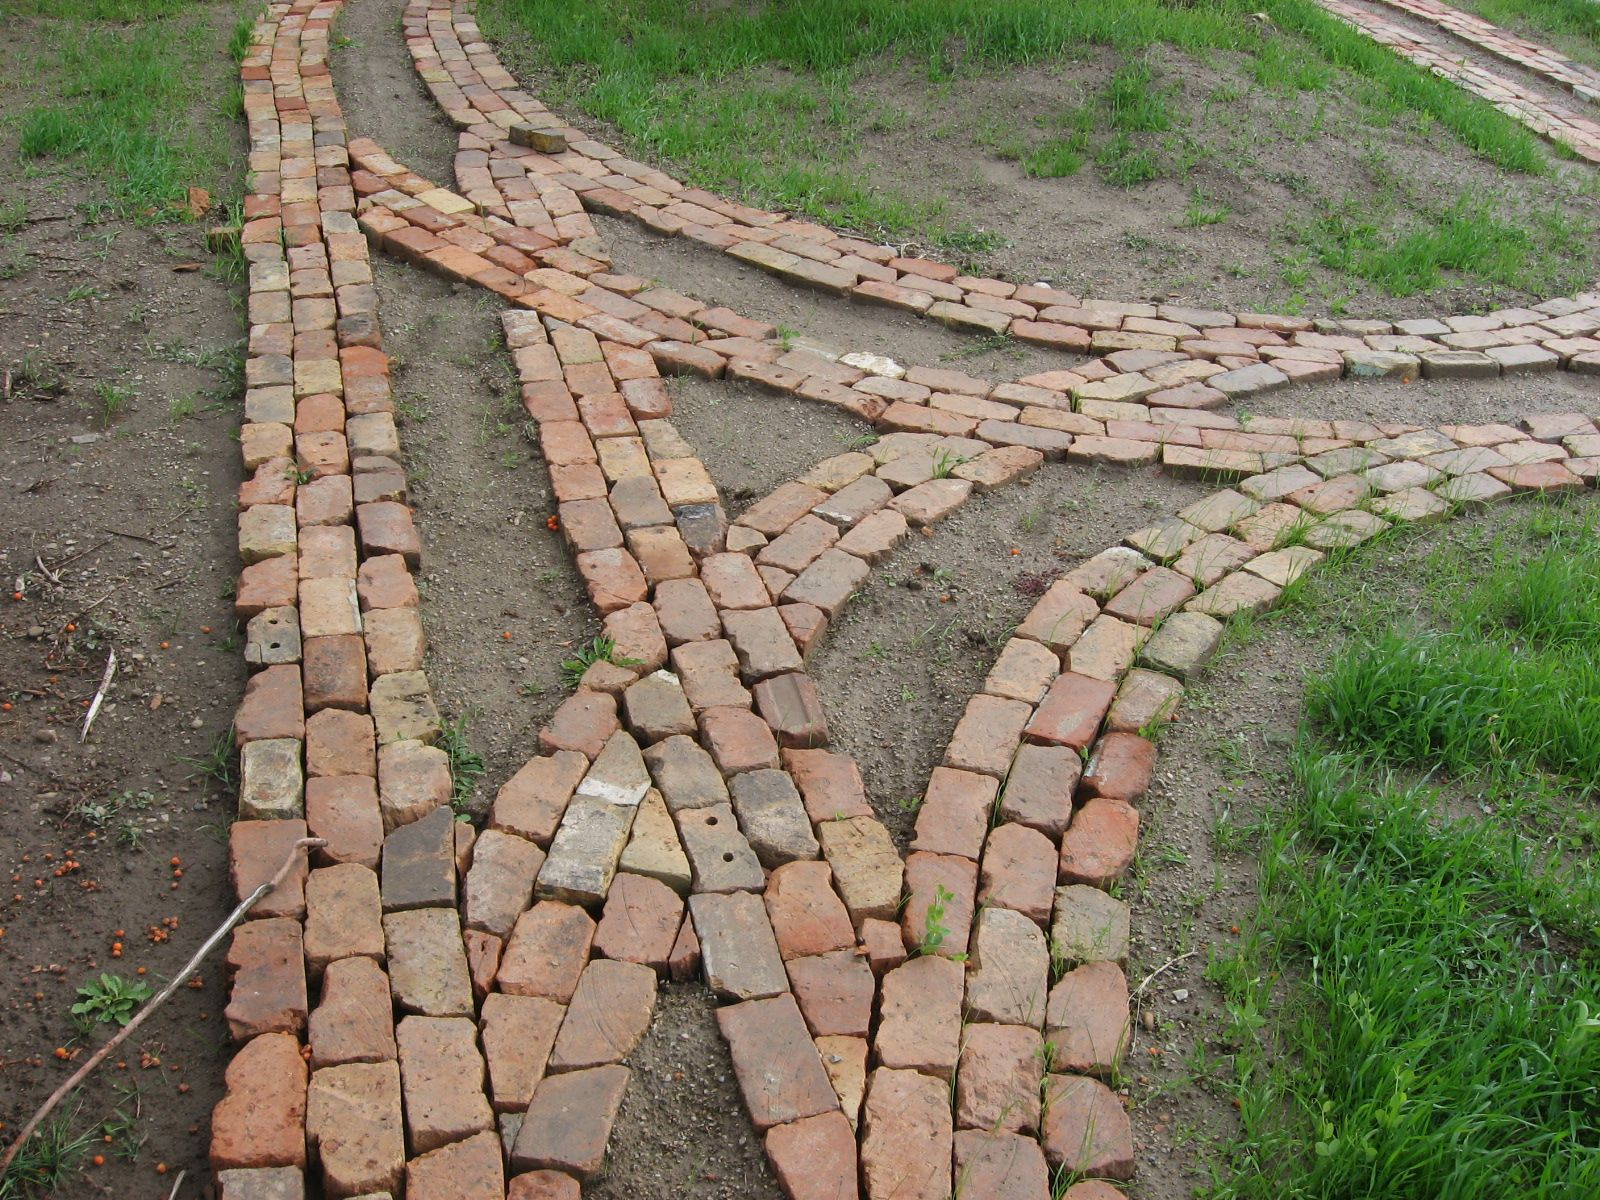 Reclaimed brick garden path under constructions Дача Тропинки в